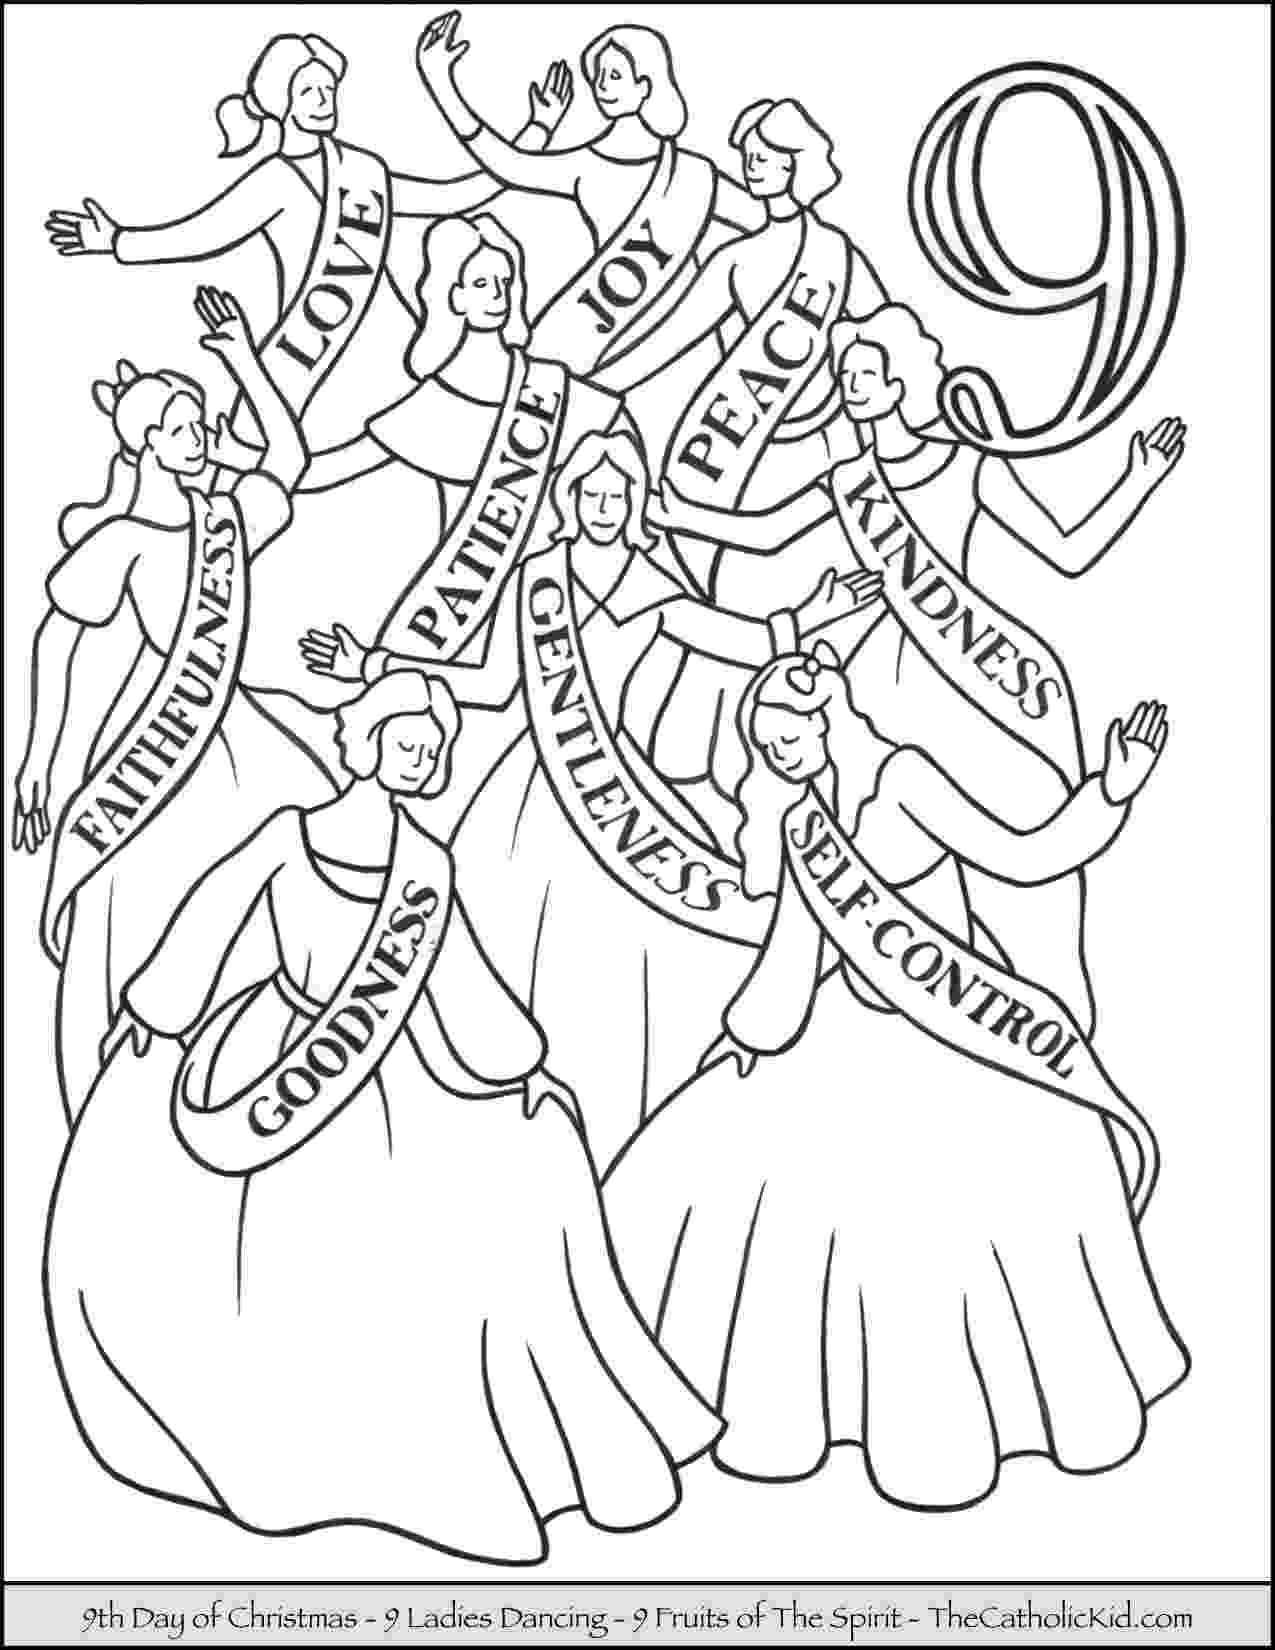 12 days of christmas coloring pages 12 days of christmas coloring pages thecatholickidcom pages christmas 12 of coloring days